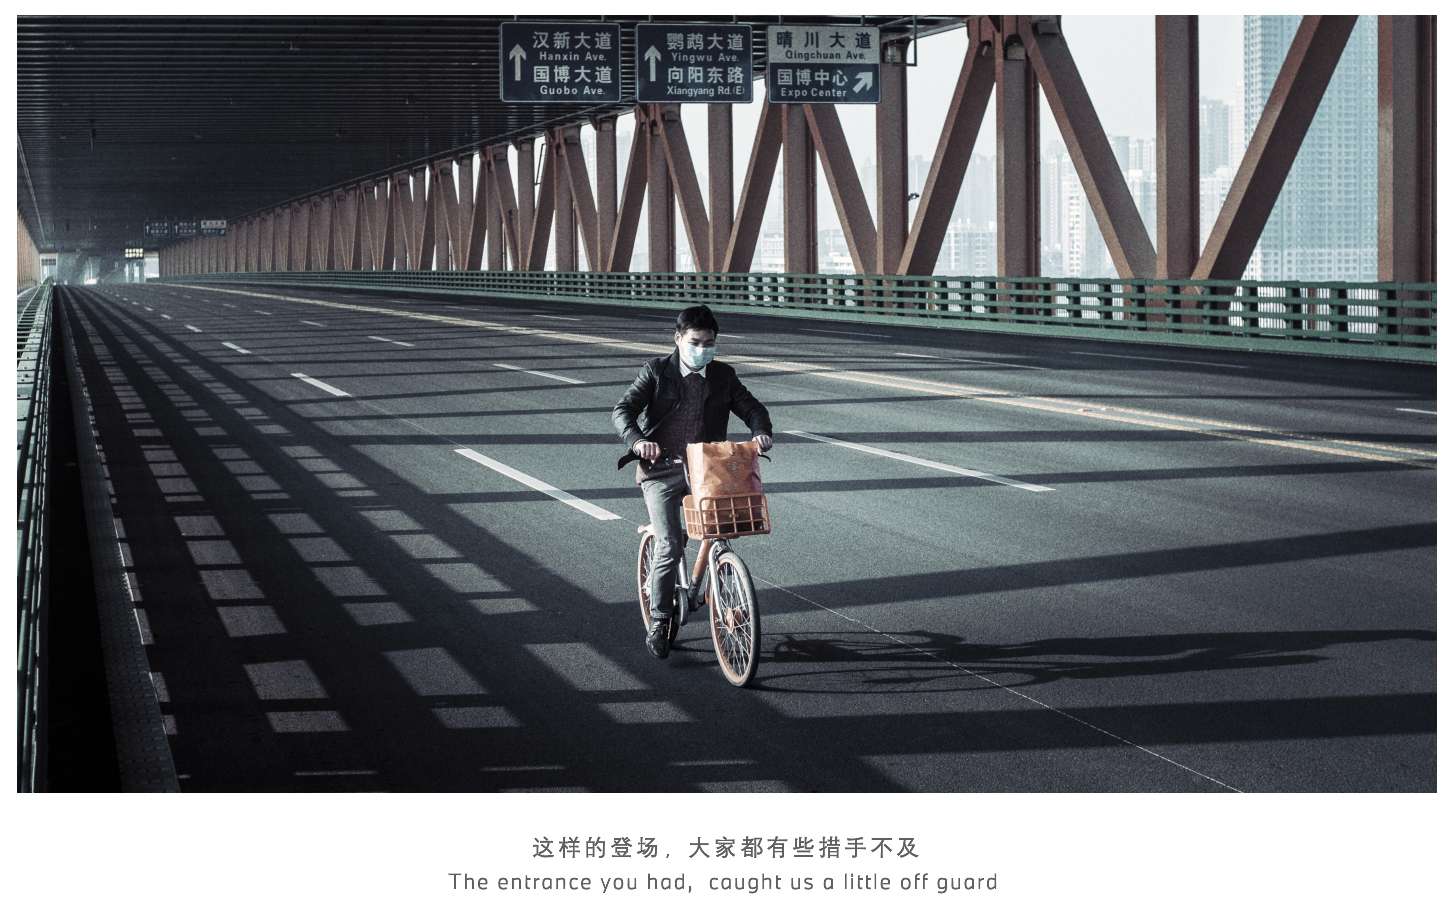 Blue Skies and White Clouds will arrive as promised says BMW China in words of encouragement message via Juice Network Beijing